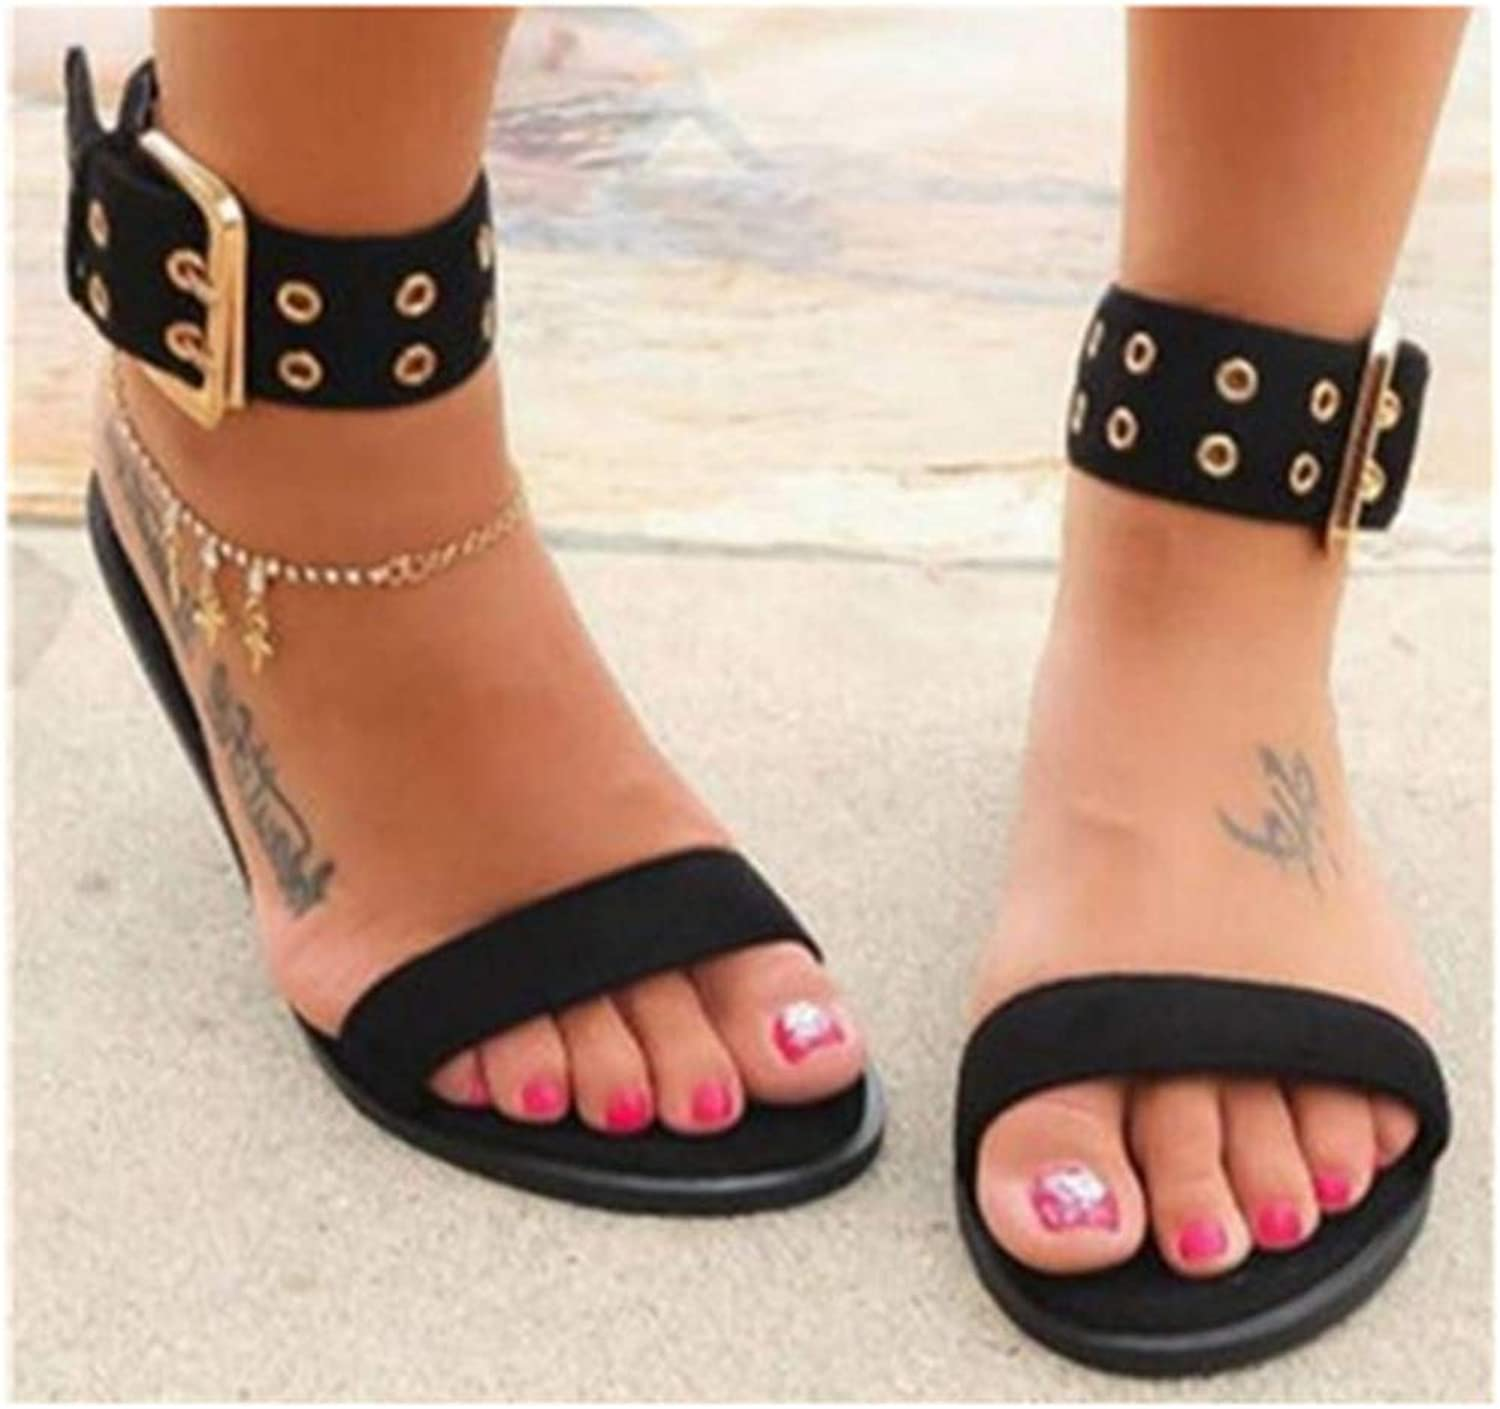 New Women Sandals Transparent Flat Summer Gladiator Open Toe Clear Jelly shoes Ladies Roman Beach Sandals Black